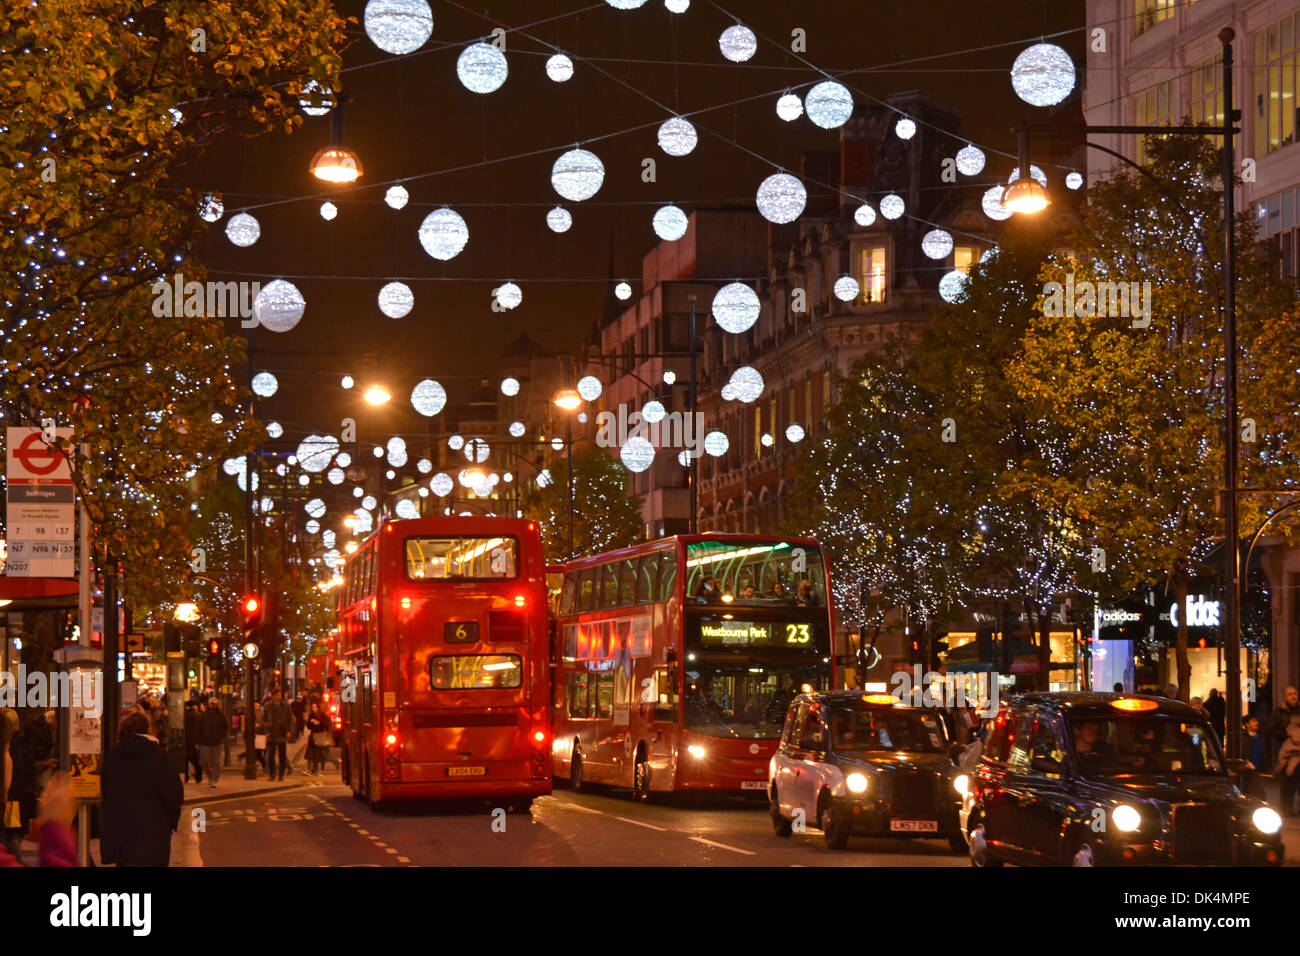 London taxis and buses in Oxford Street  below Christmas decorations - Stock Image